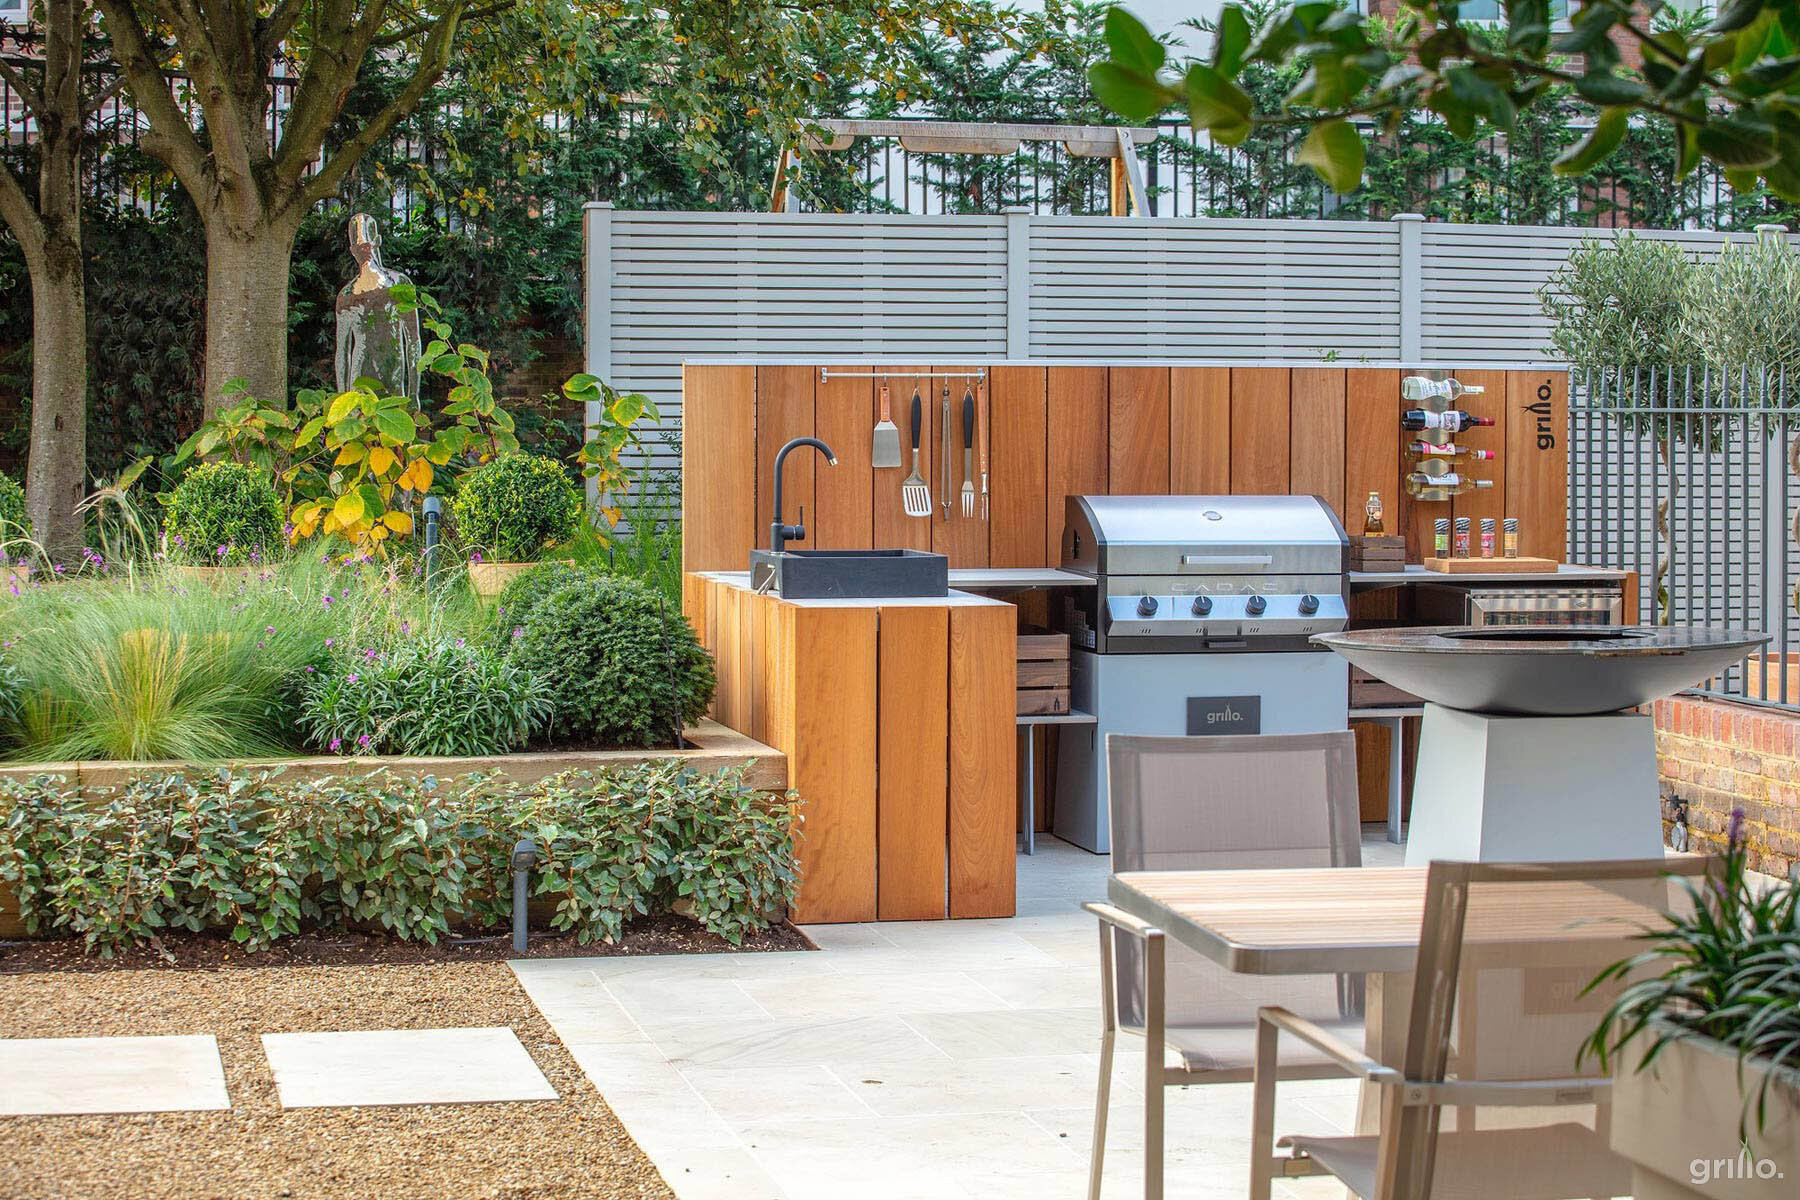 Grillo  Beautiful Outdoor Kitchens